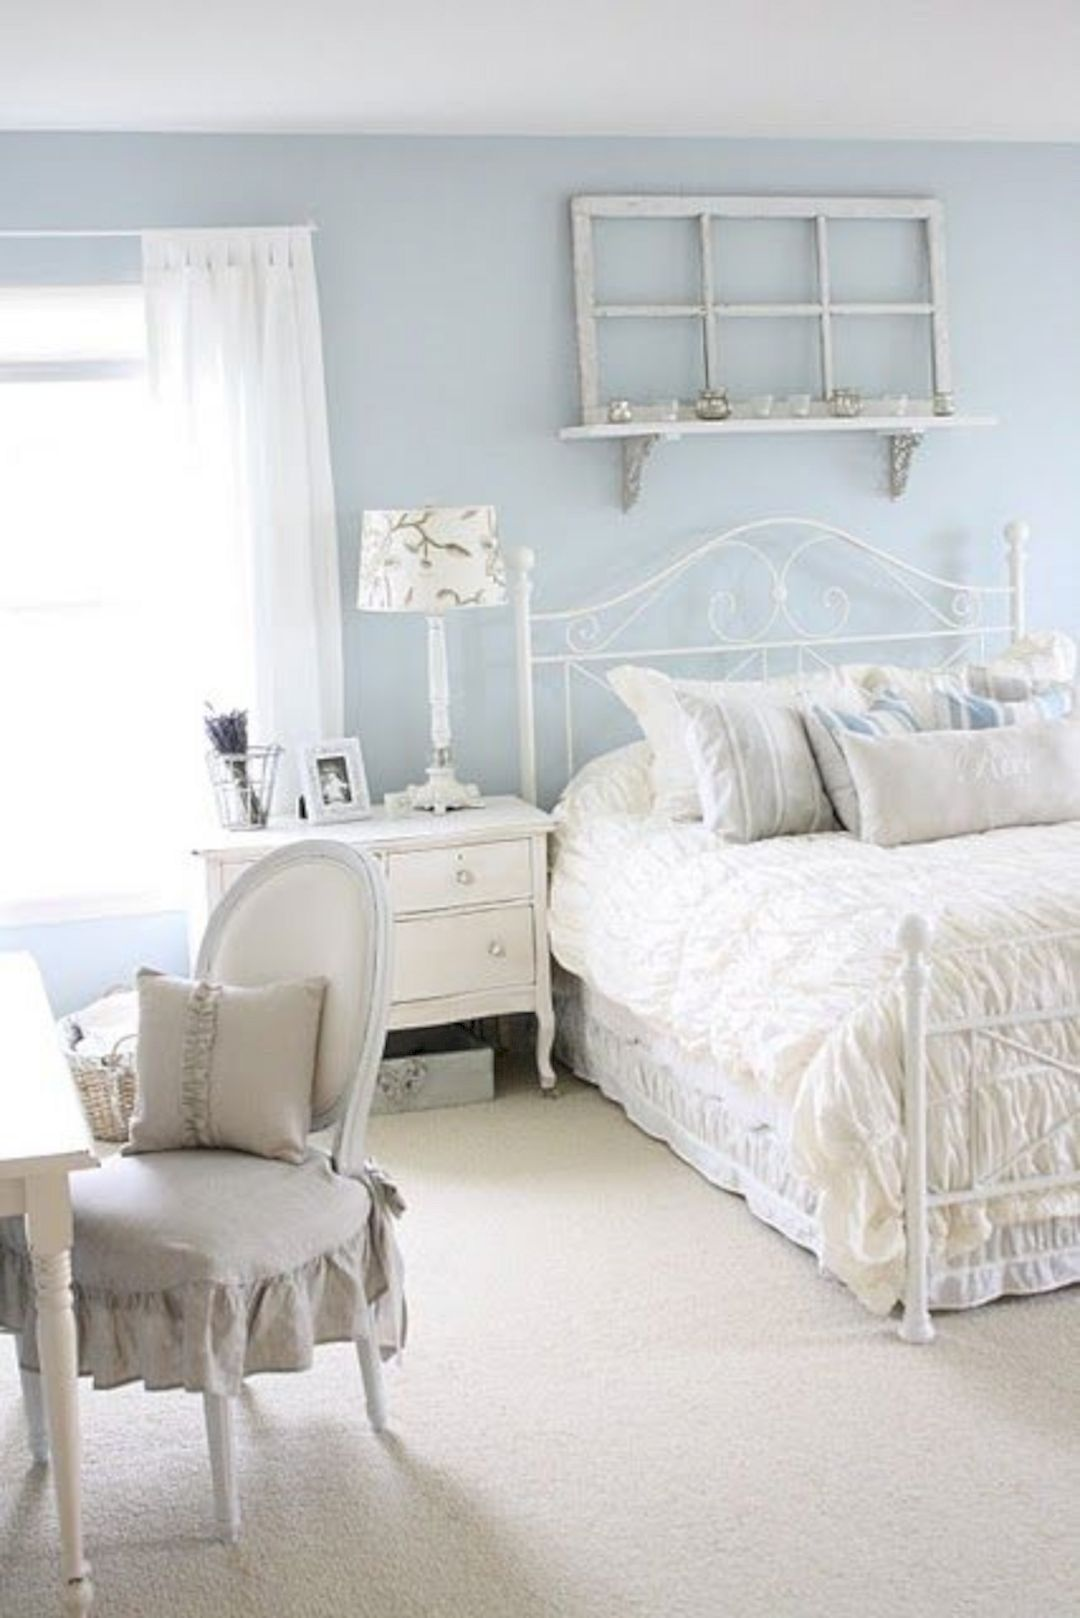 25 Fashionable Shabby Chic Bedroom (All Are Stylish!) - Q16